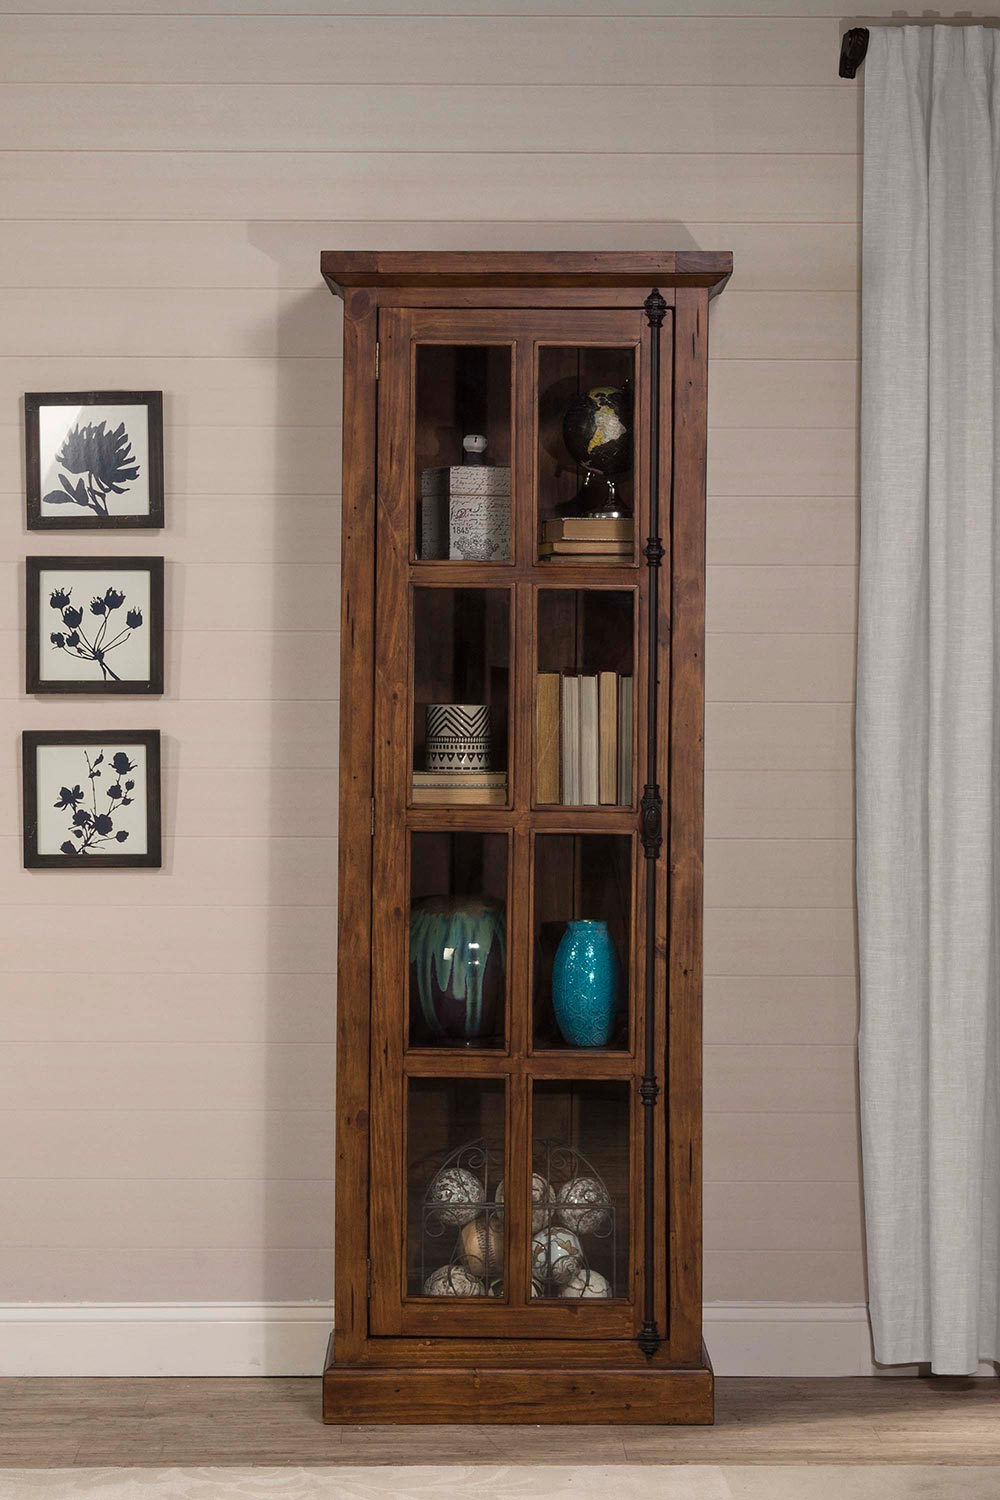 Hillsdale Tuscan Retreat Tall Single Door Cabinet - Antique Pine - Hillsdale Tuscan Retreat Tall Single Door Cabinet - Antique Pine